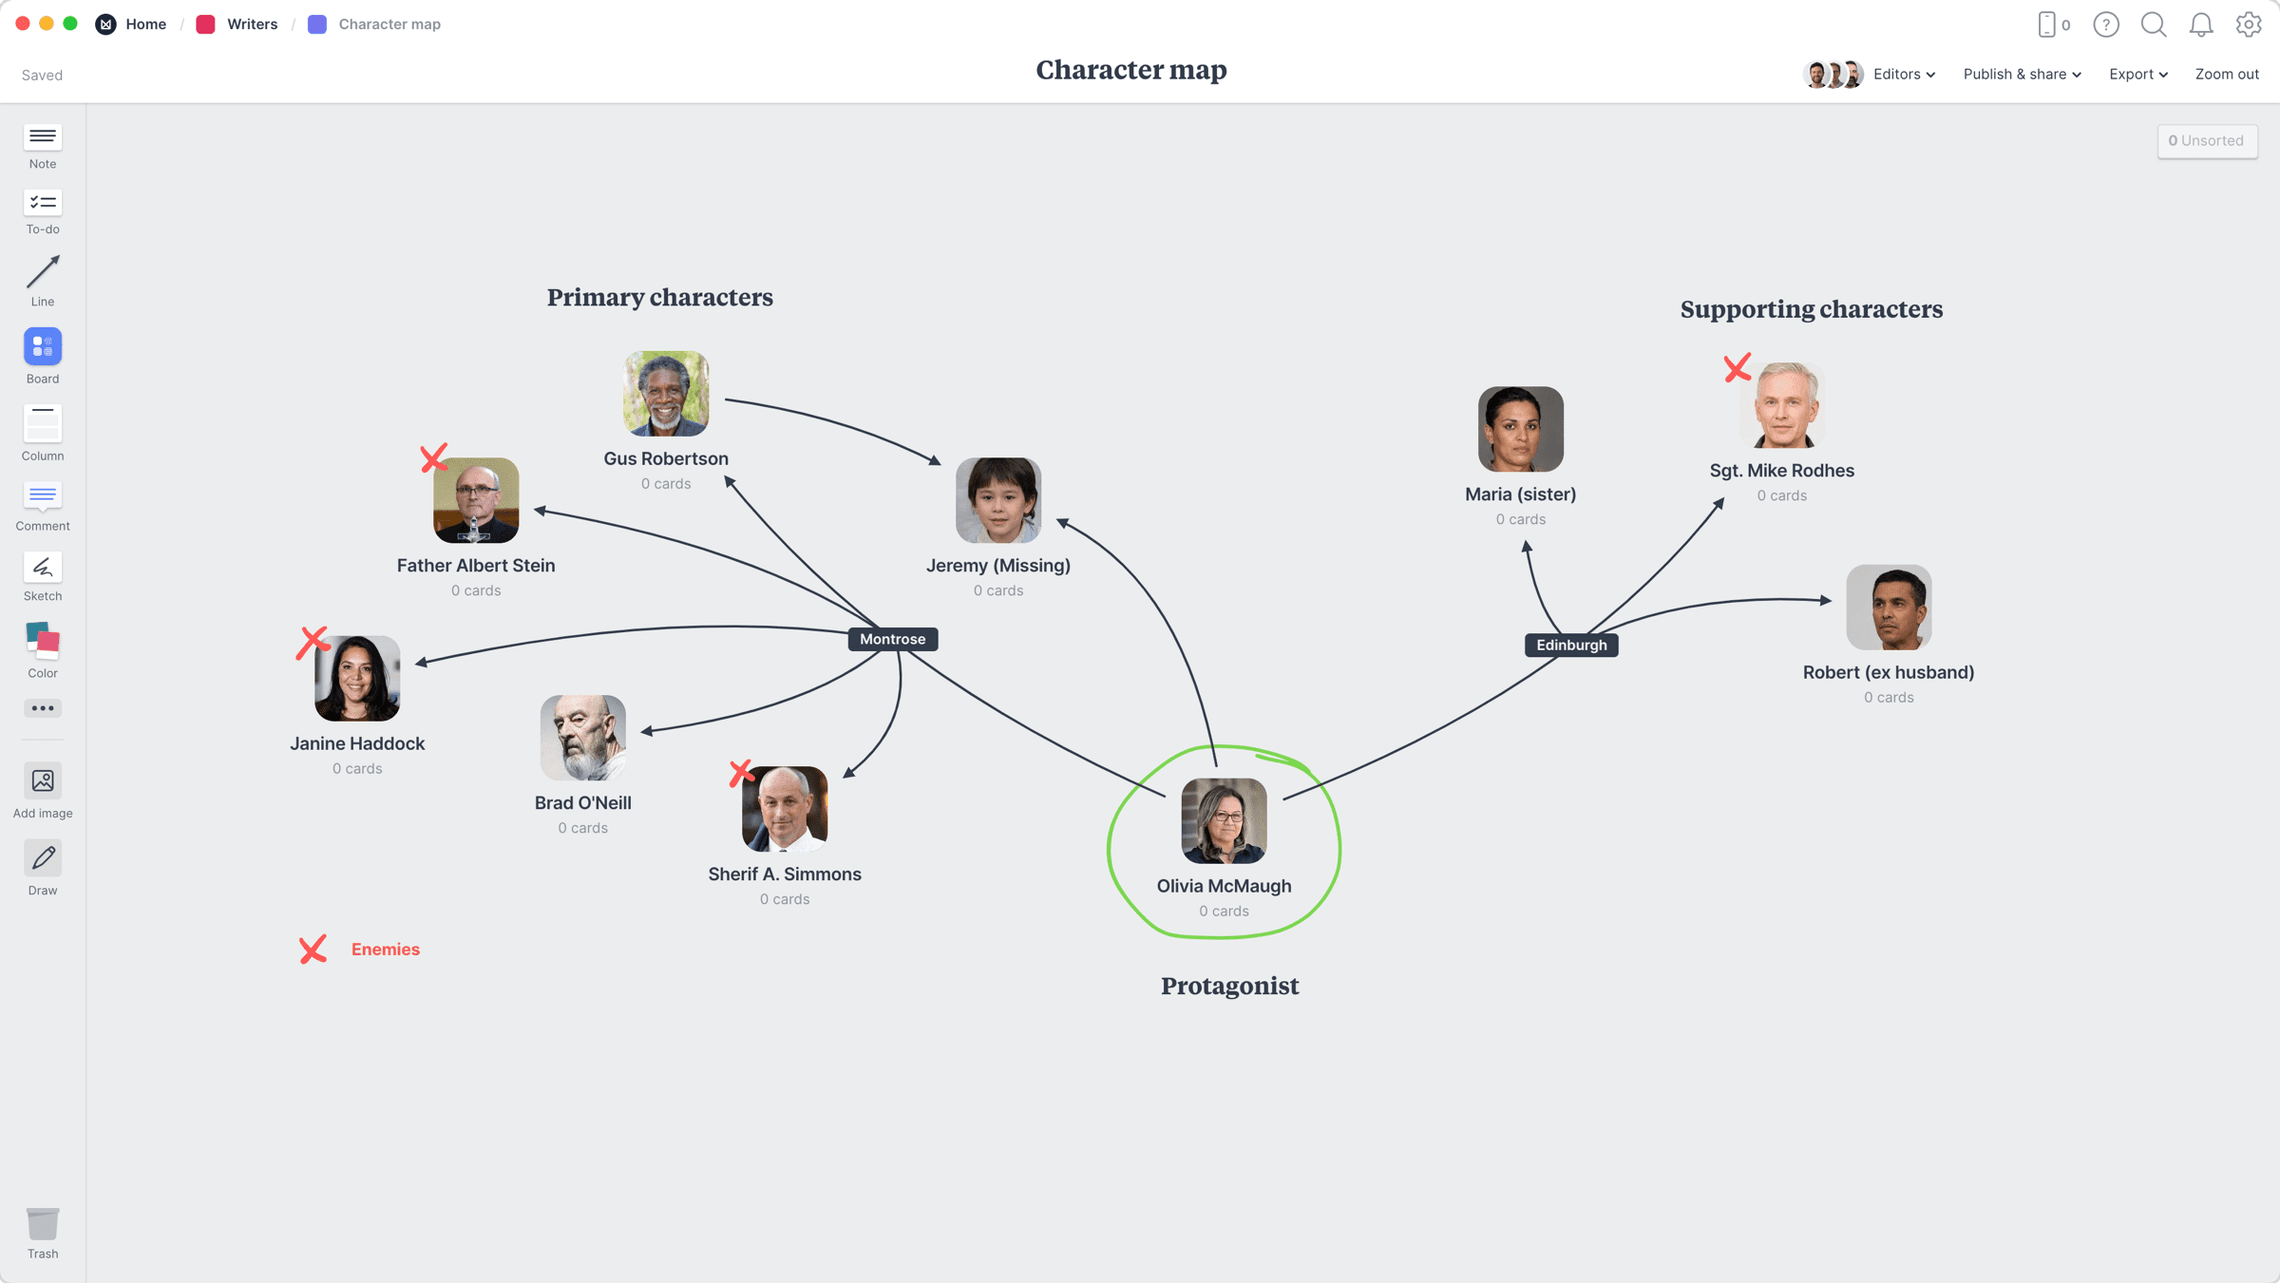 Character Relationship Map Template, within the Milanote app